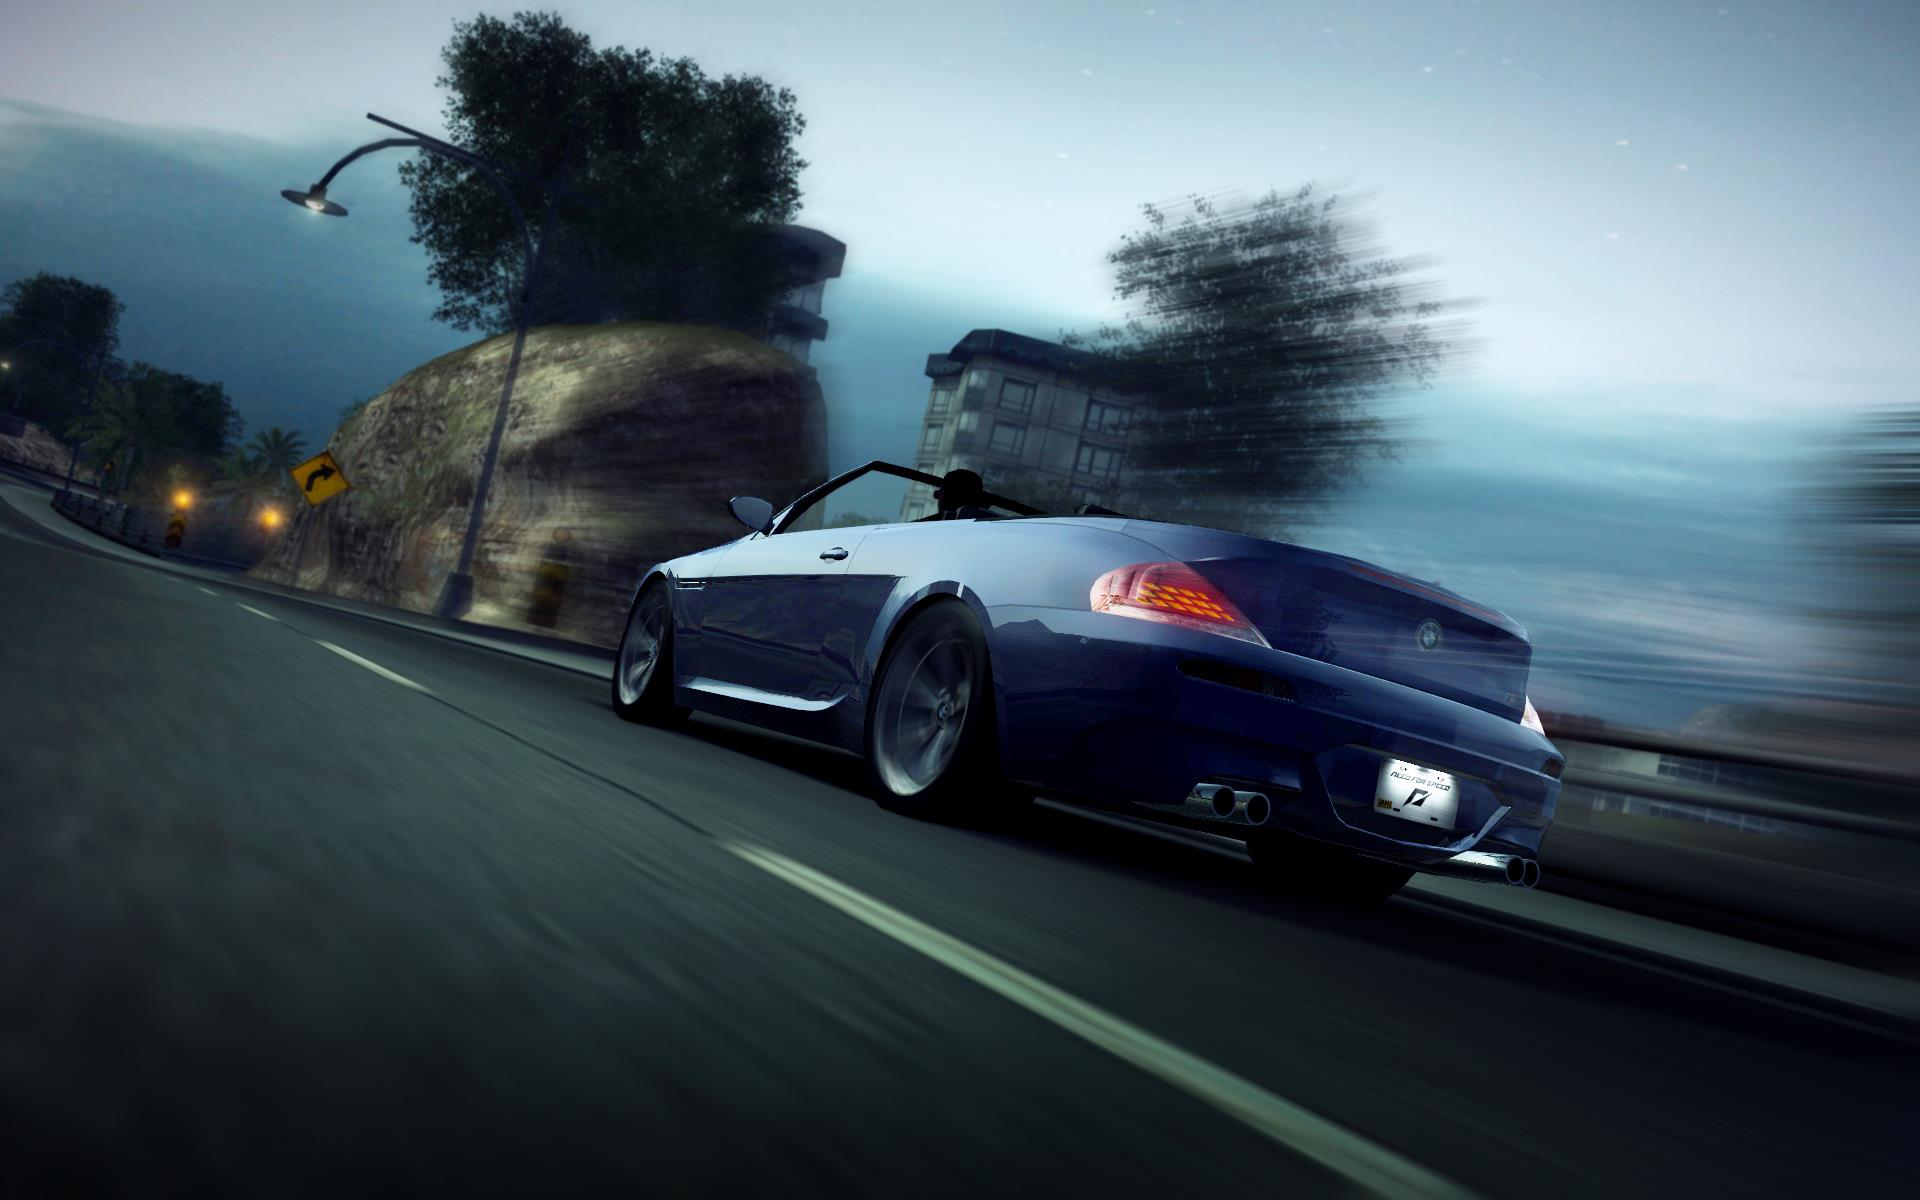 bmw m6 convertible nfs world wiki fandom powered by wikia. Black Bedroom Furniture Sets. Home Design Ideas